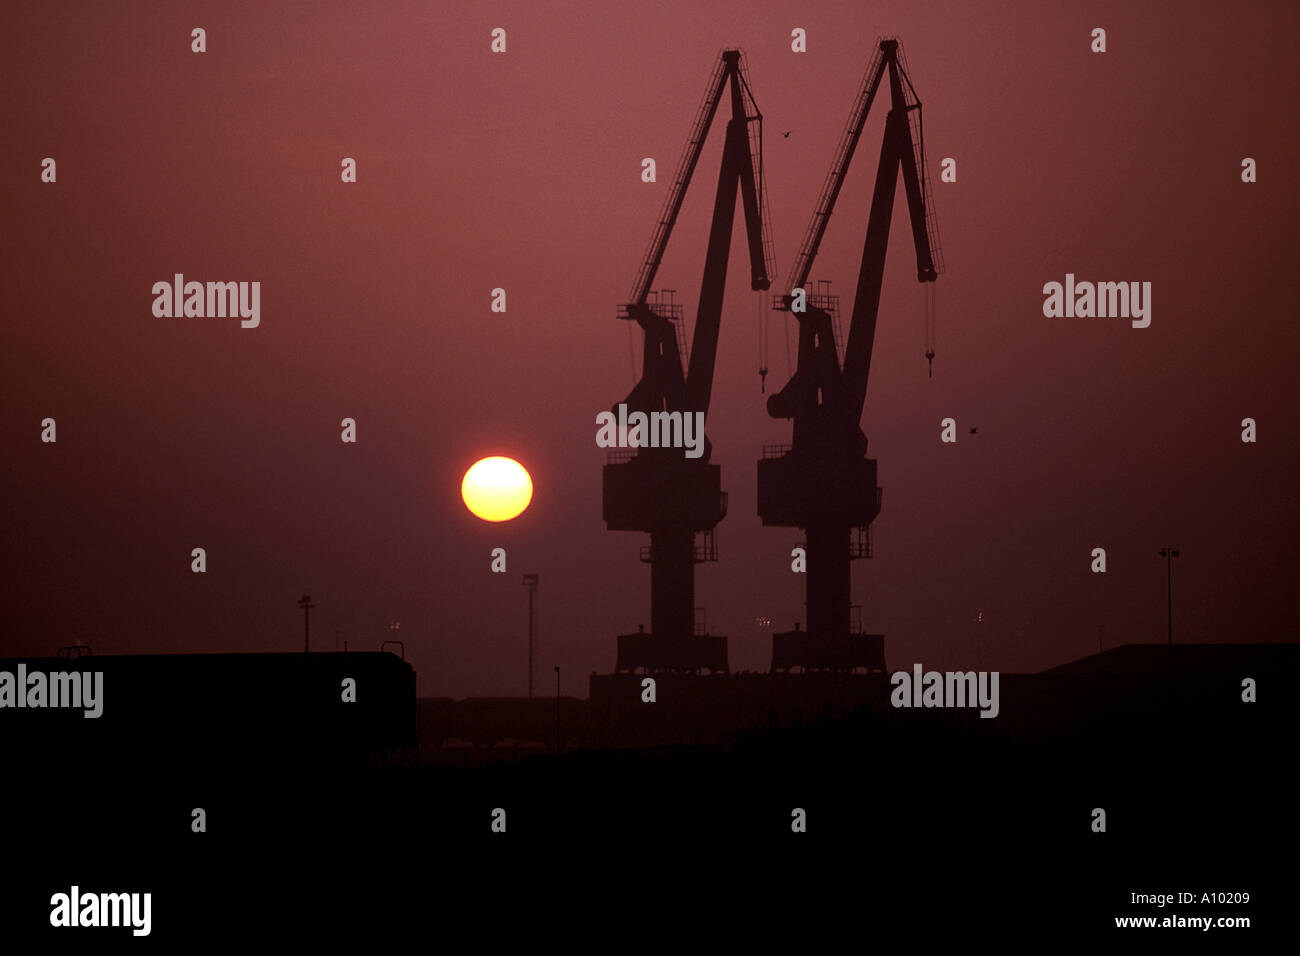 dockyard cranes in Rotterdam Holland in silhouette - Stock Image